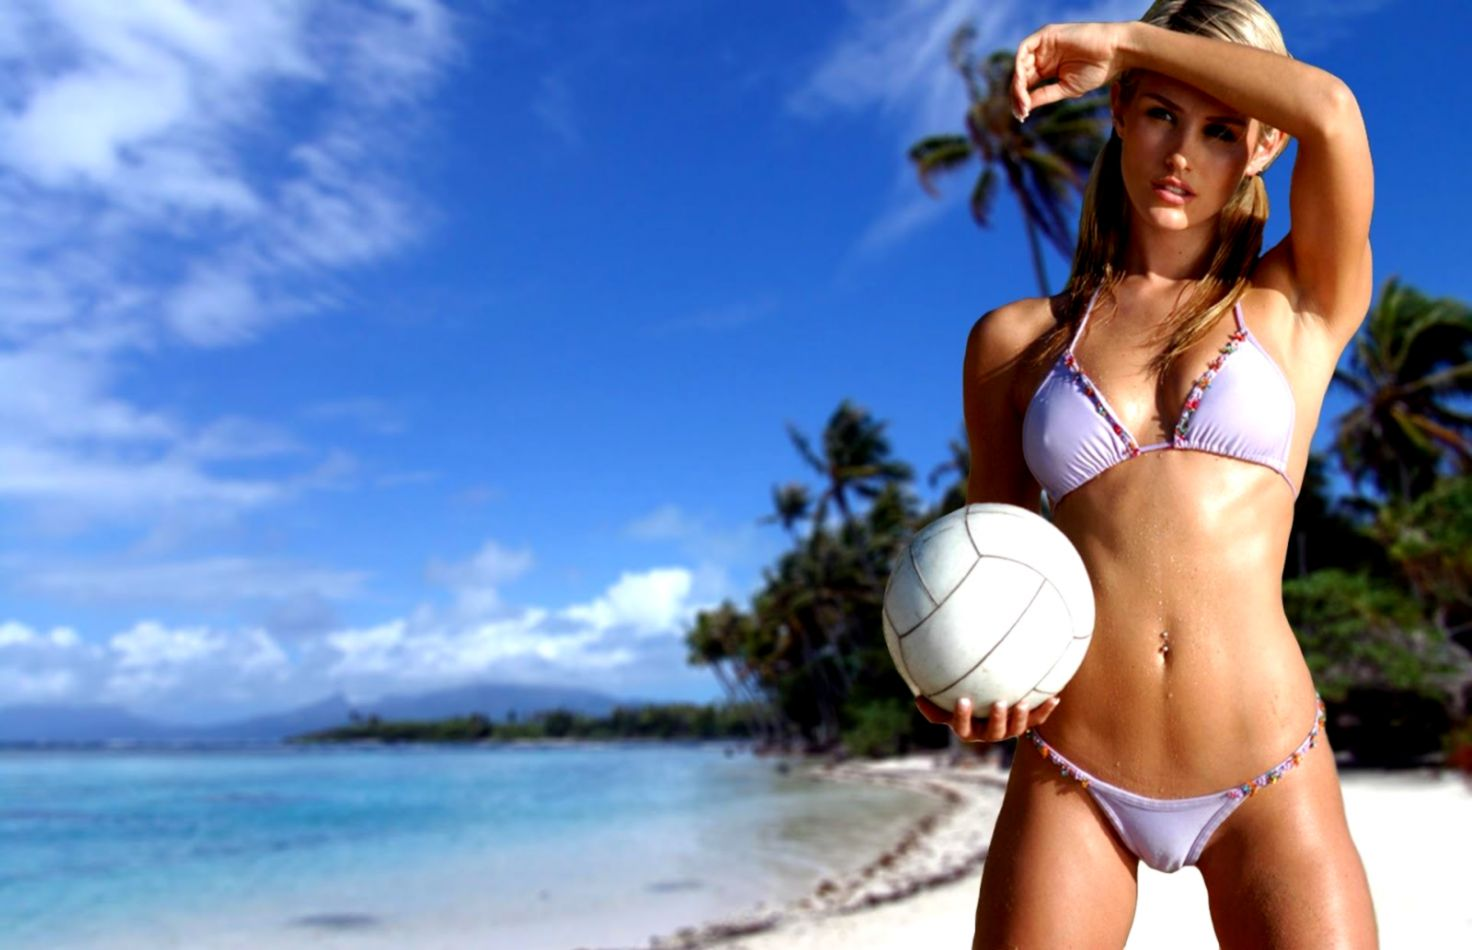 Wallpapers Hd Beach Girls Like Wallpapers